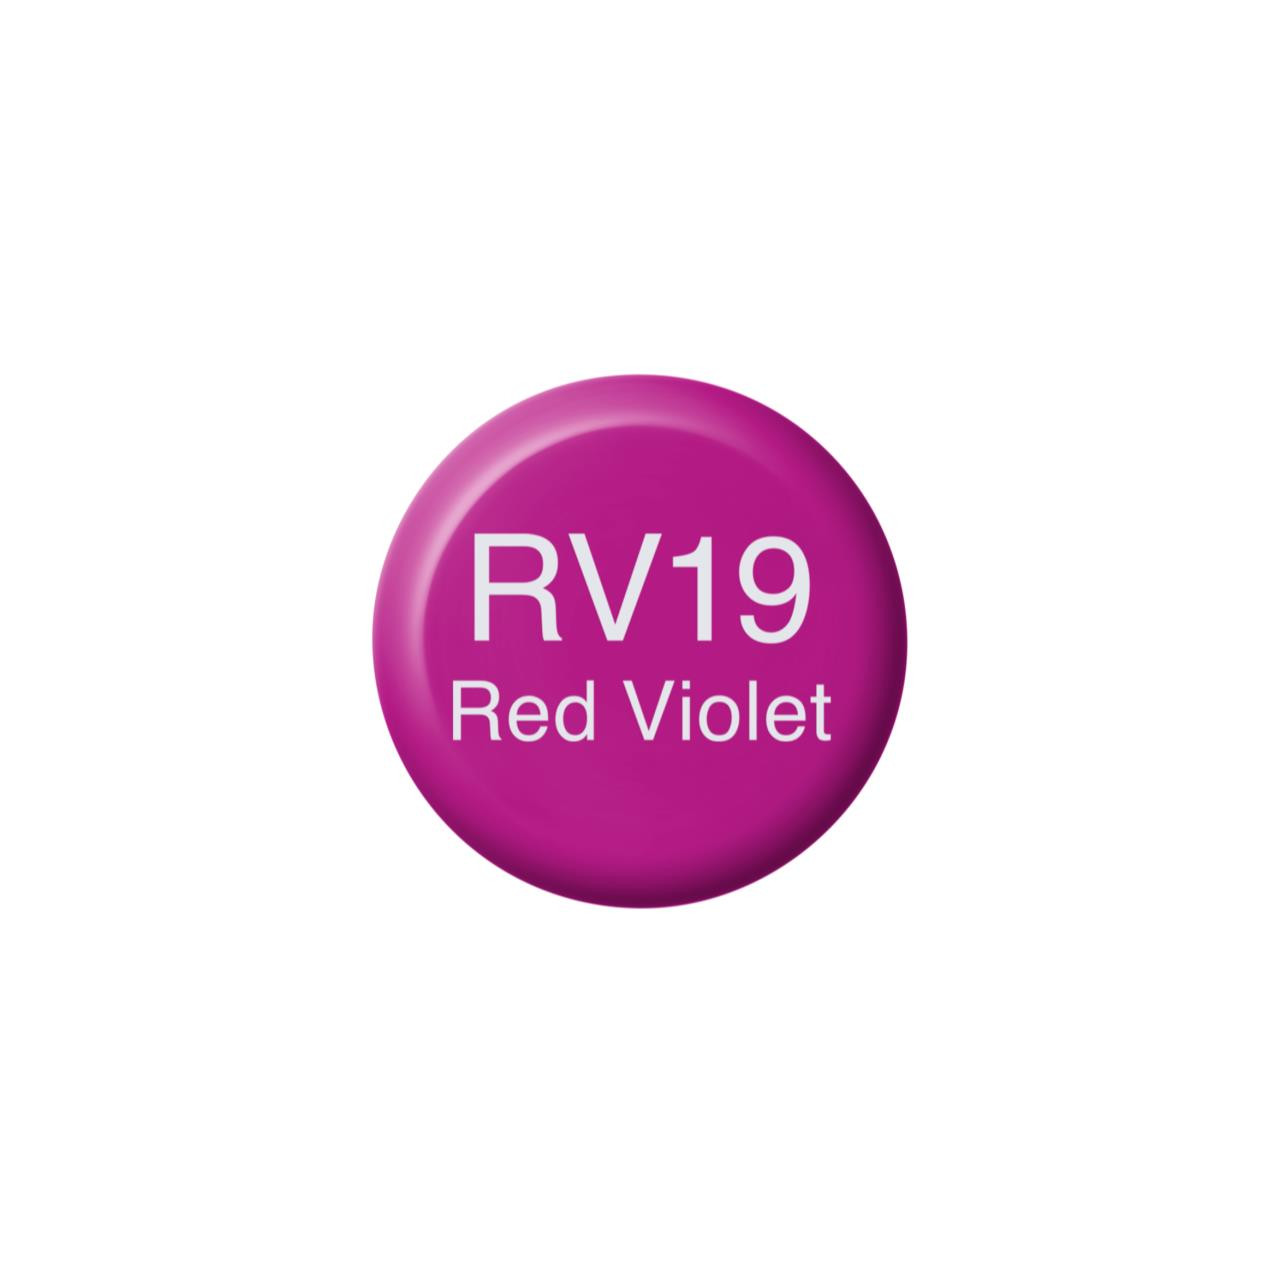 RV19 Red Violet, Copic Ink - 4511338057780